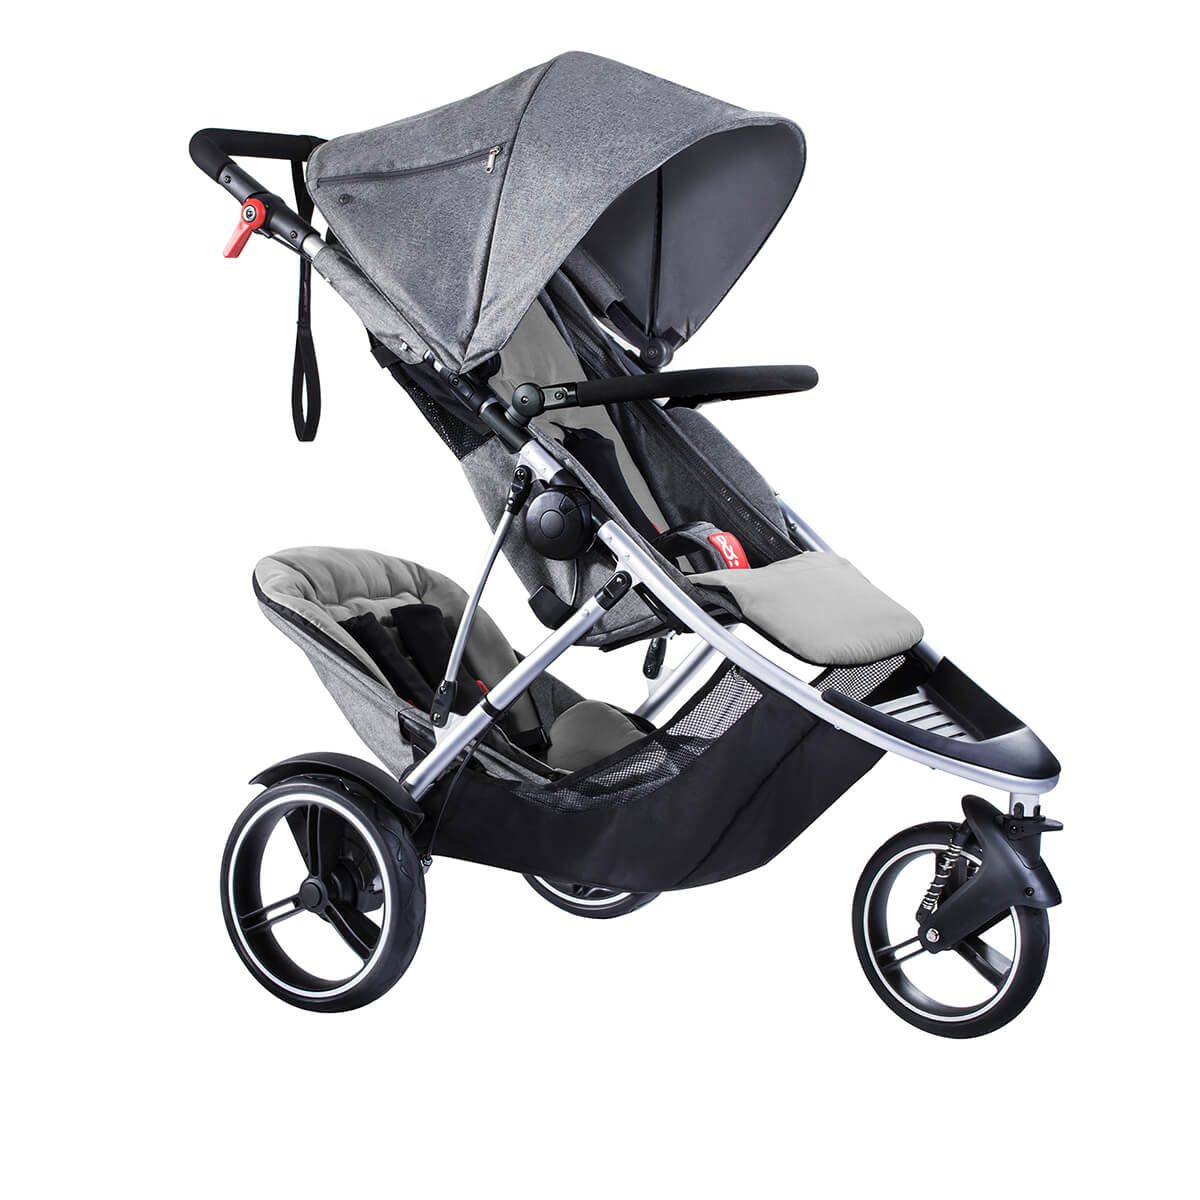 NEW phil&teds dash double stroller in grey marl Stroller